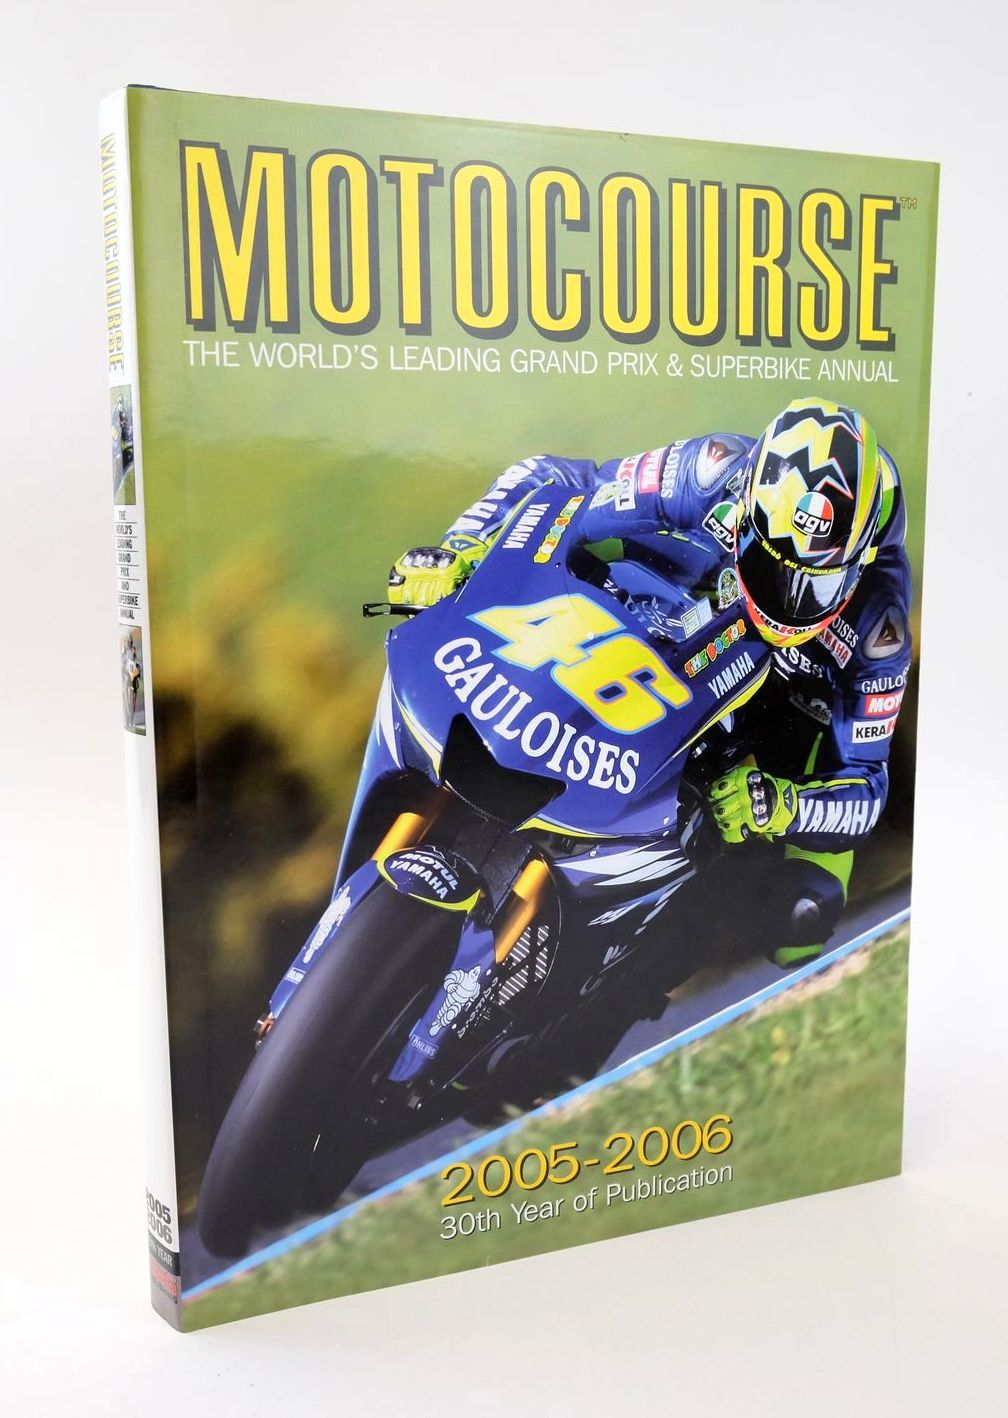 Photo of MOTOCOURSE 2005-2006 published by CMG Publishing (STOCK CODE: 1319240)  for sale by Stella & Rose's Books